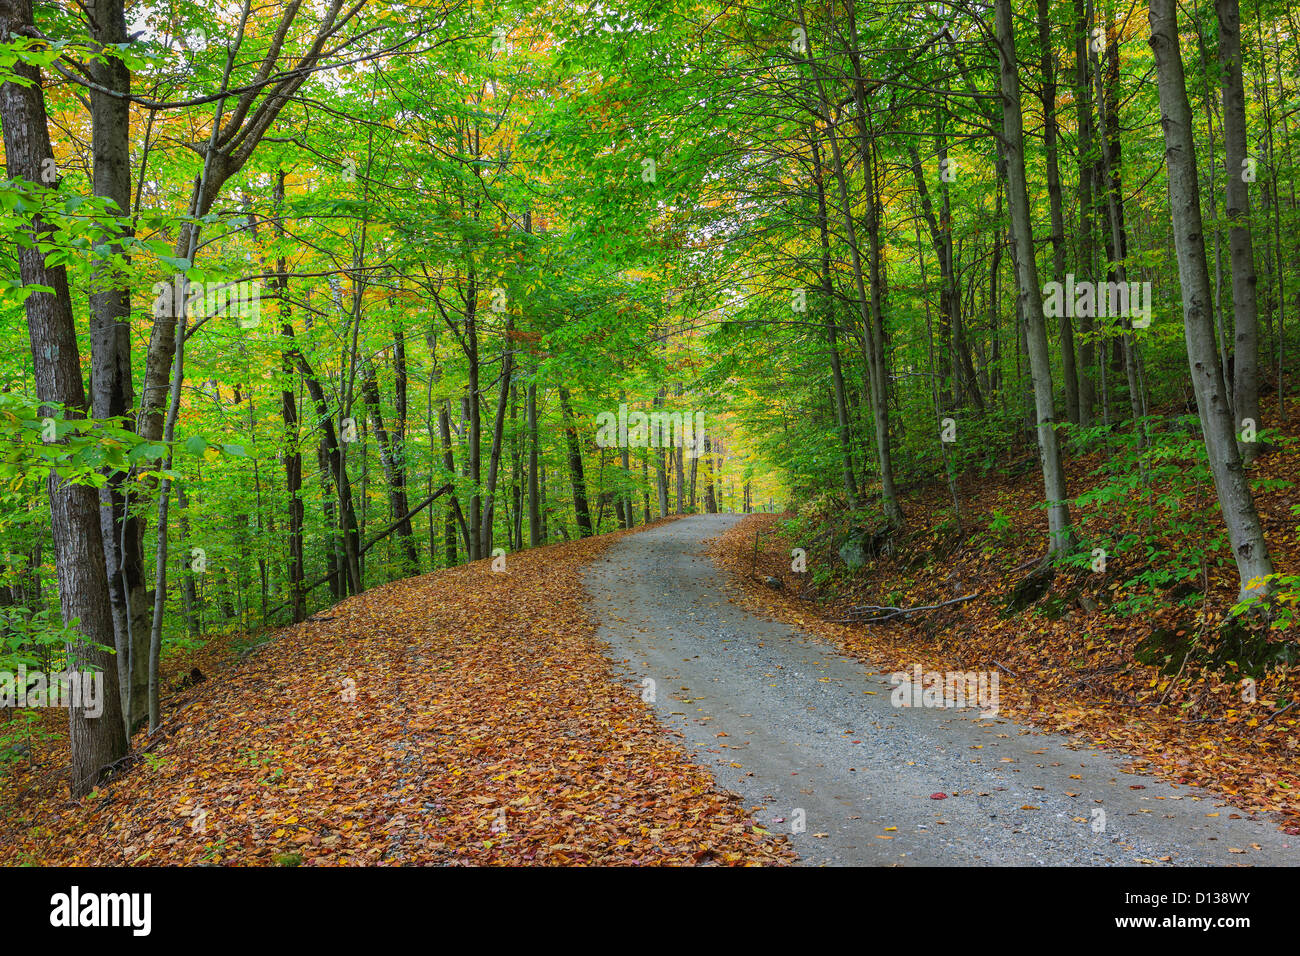 Back roads in Vermont during foliage season. - Stock Image